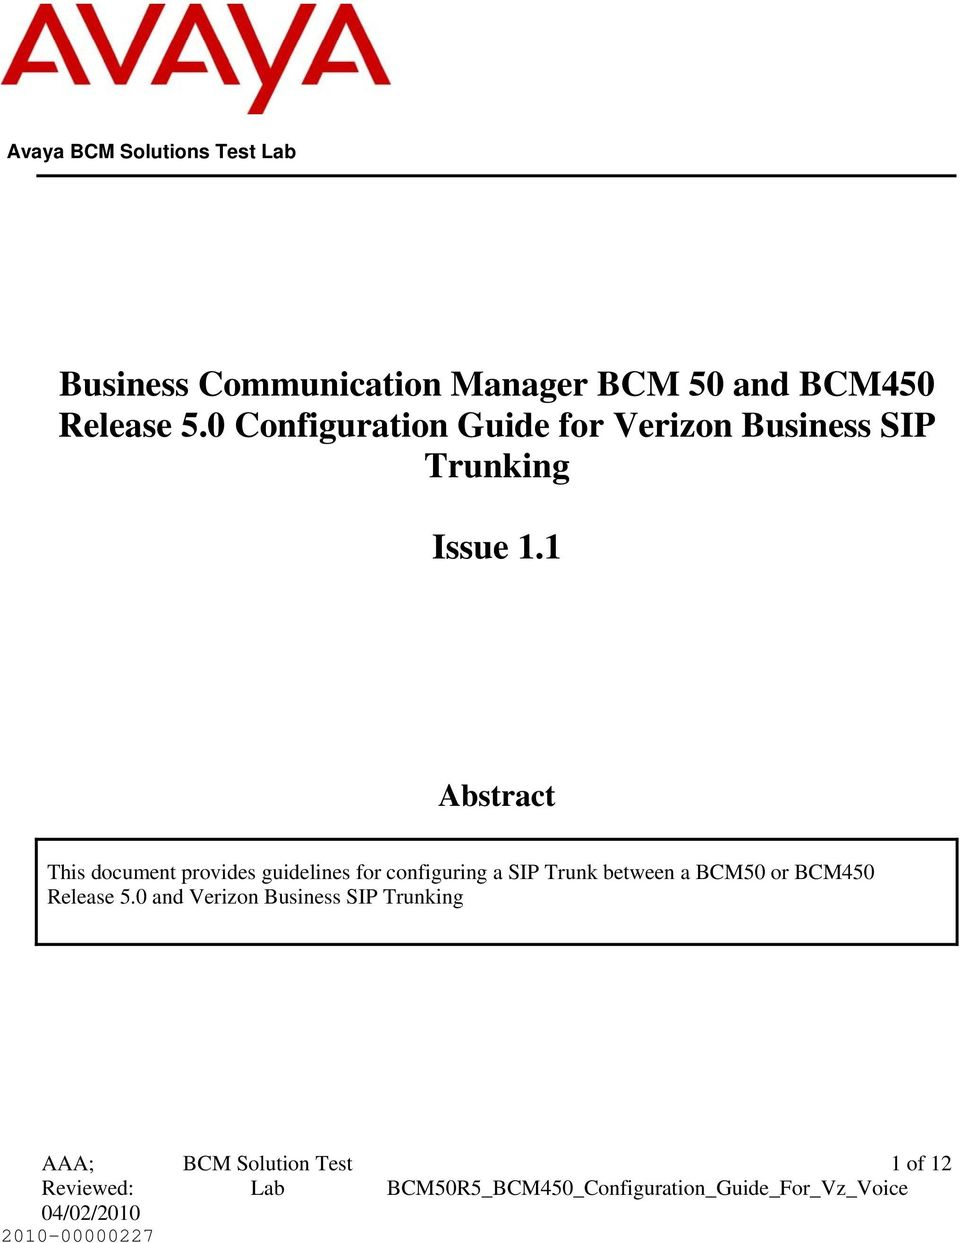 1 Abstract This document provides guidelines for configuring a SIP Trunk between a BCM50 or